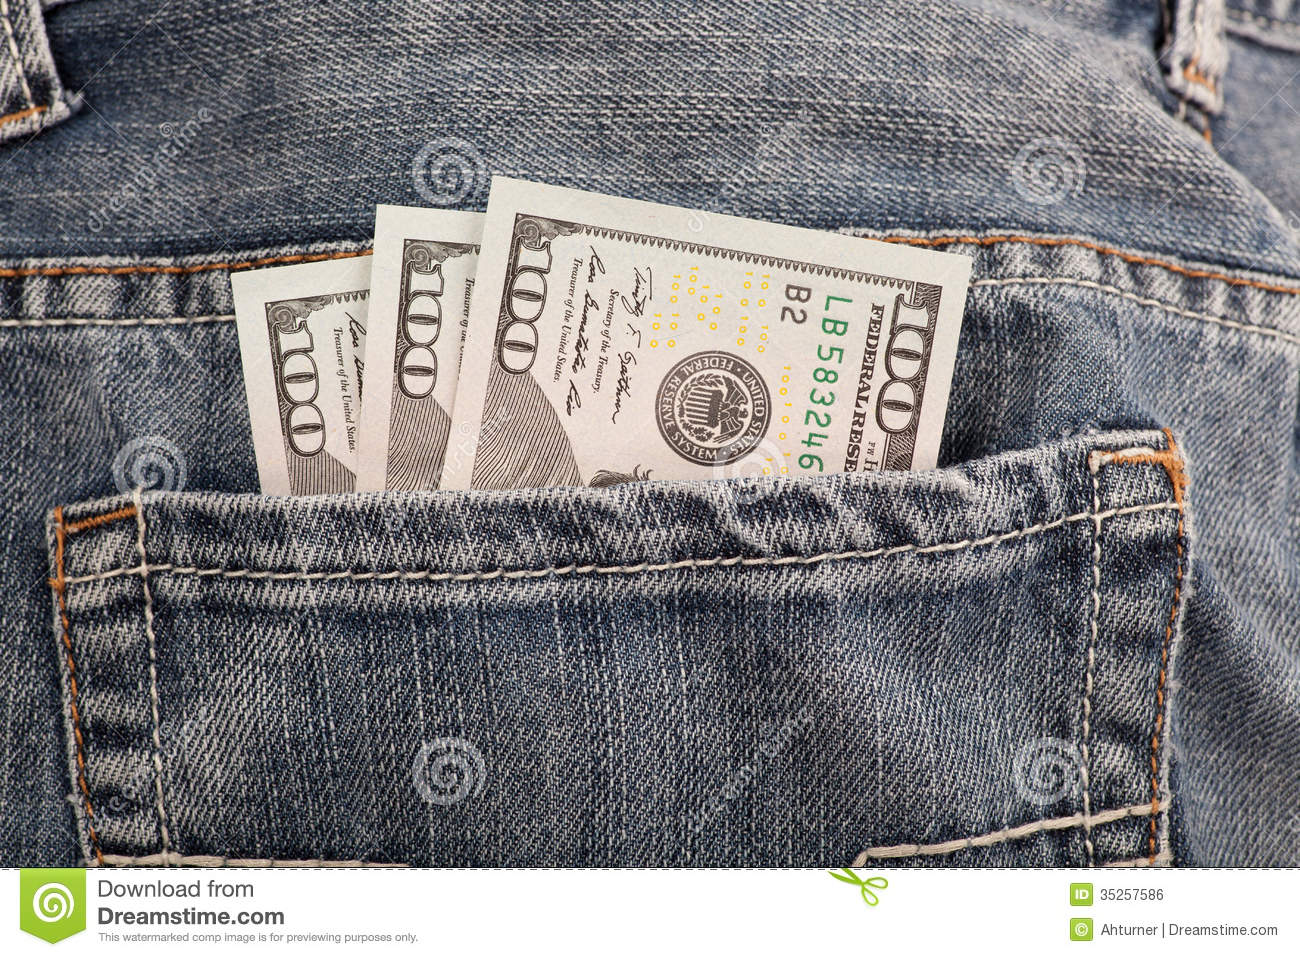 Money In Pocket Royalty Free Stock Image - Image: 35257586